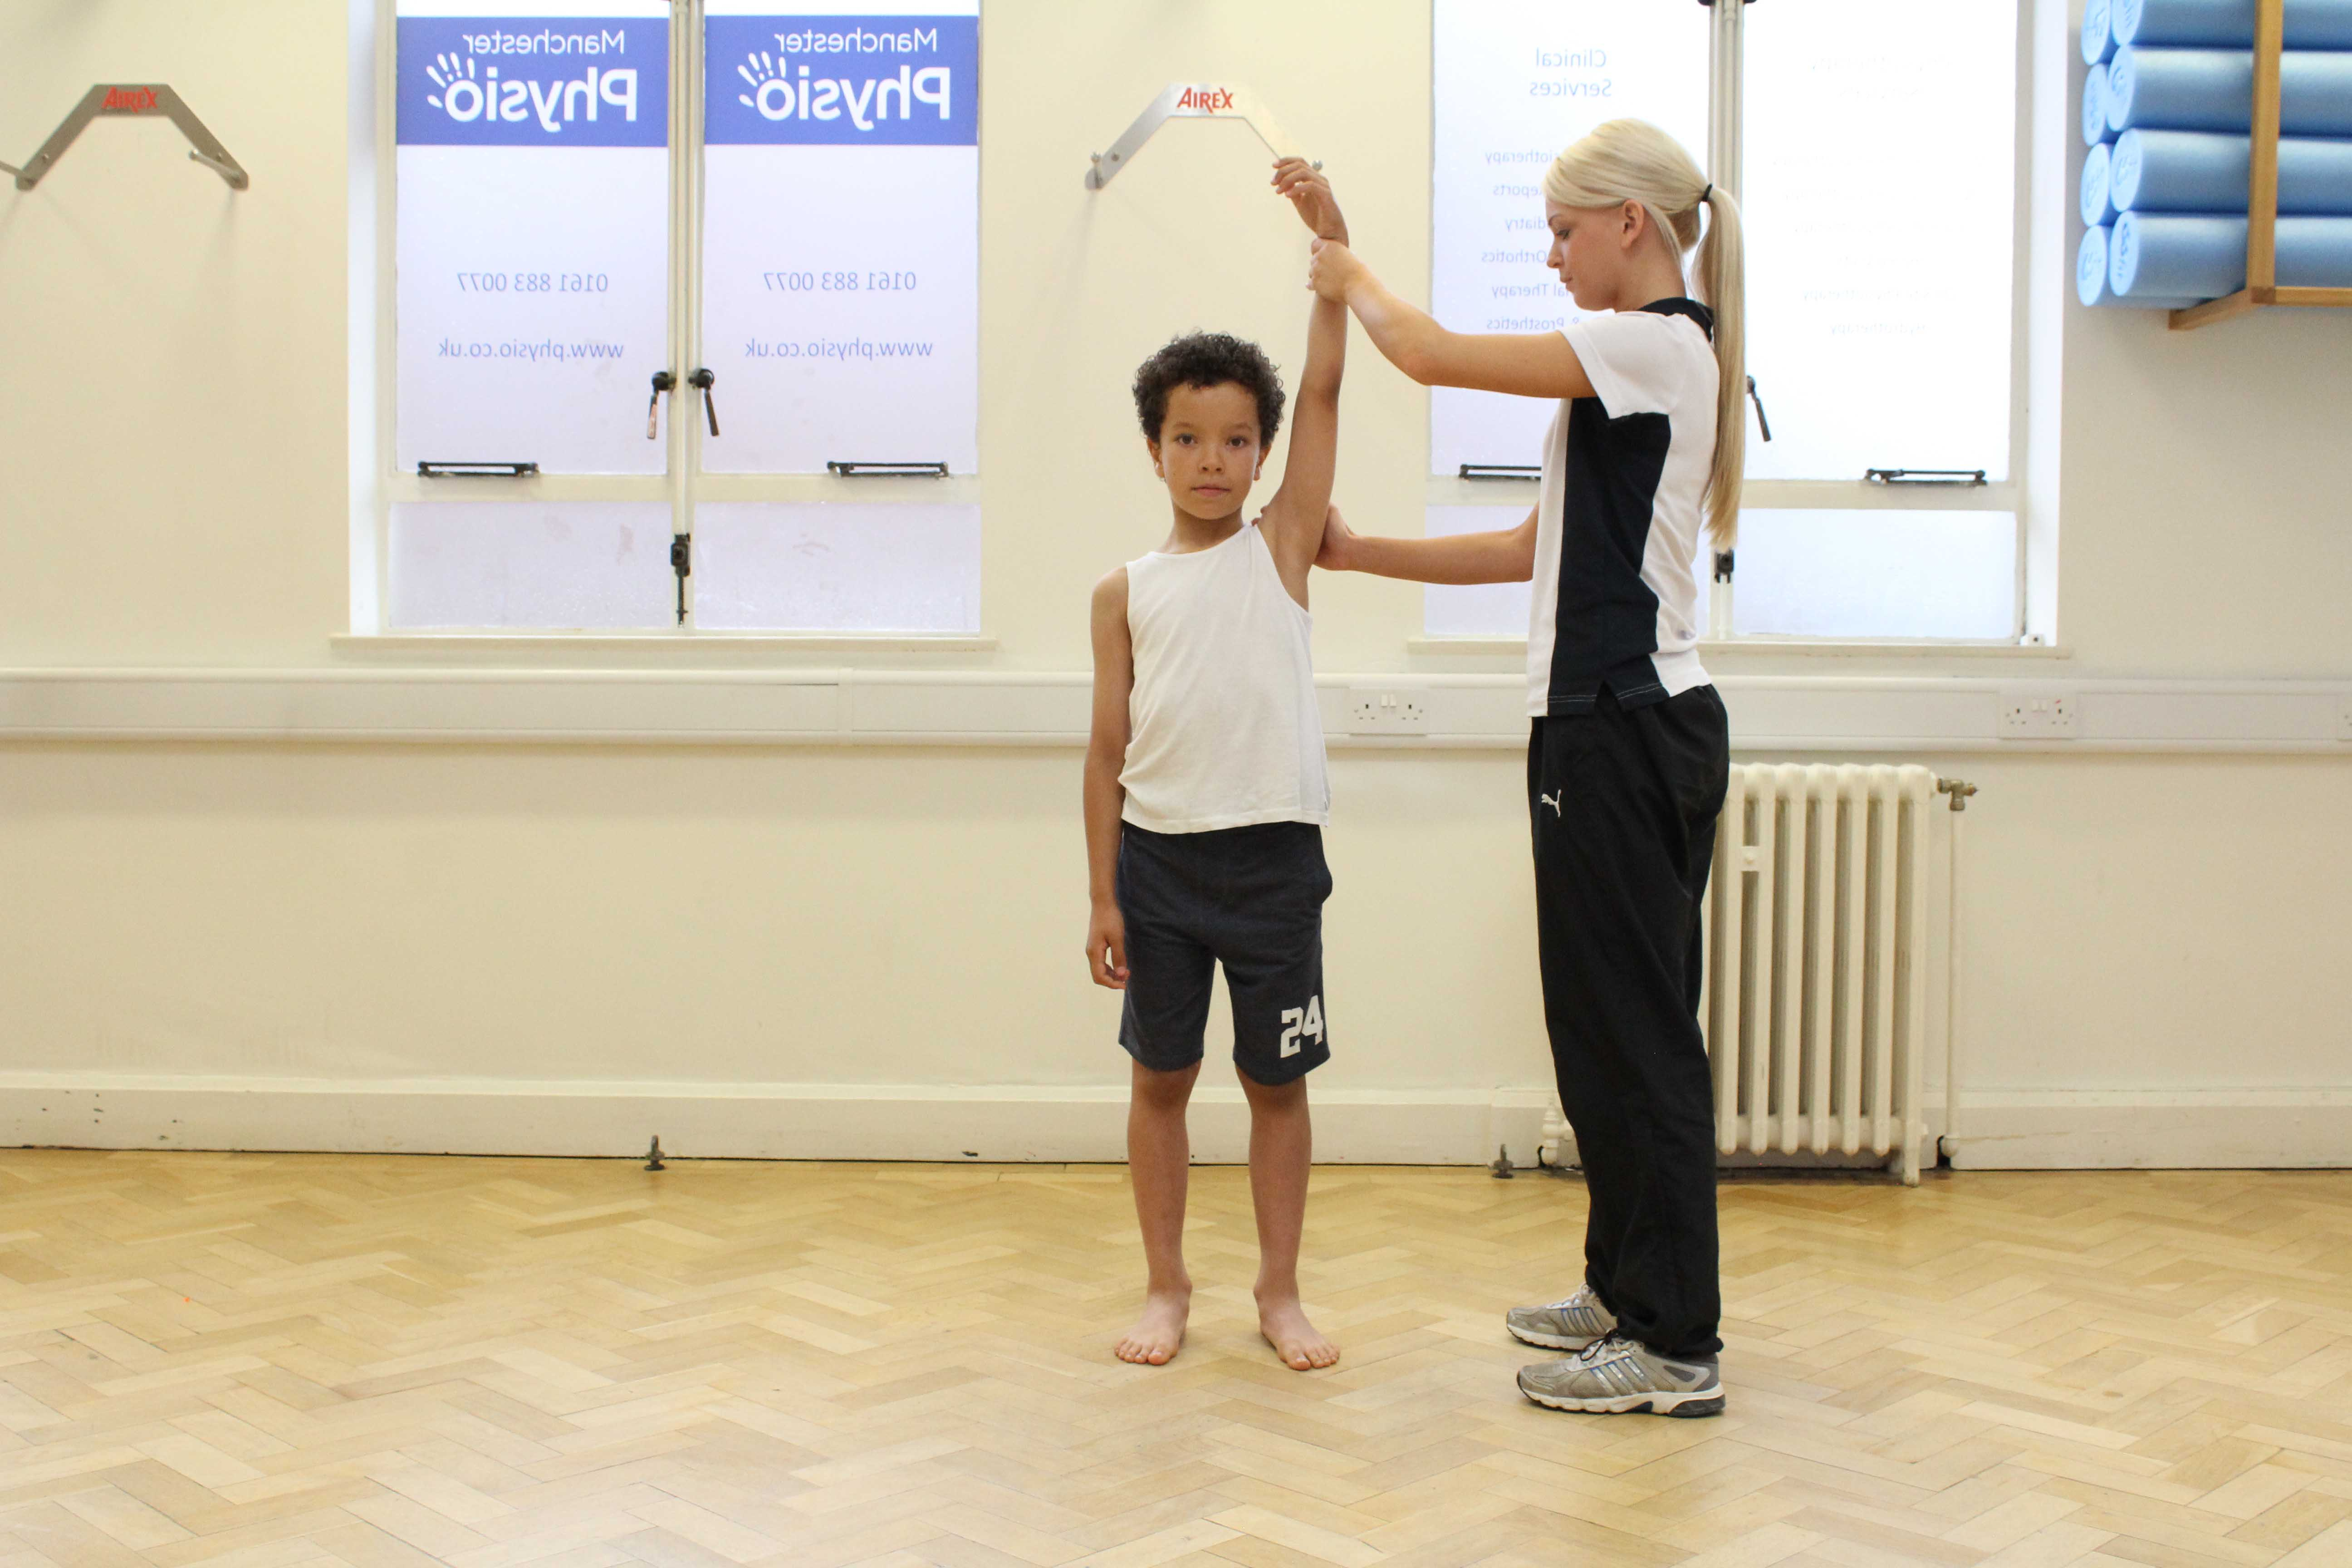 stability and toning exercises supervised by a paediatric physiotherapist